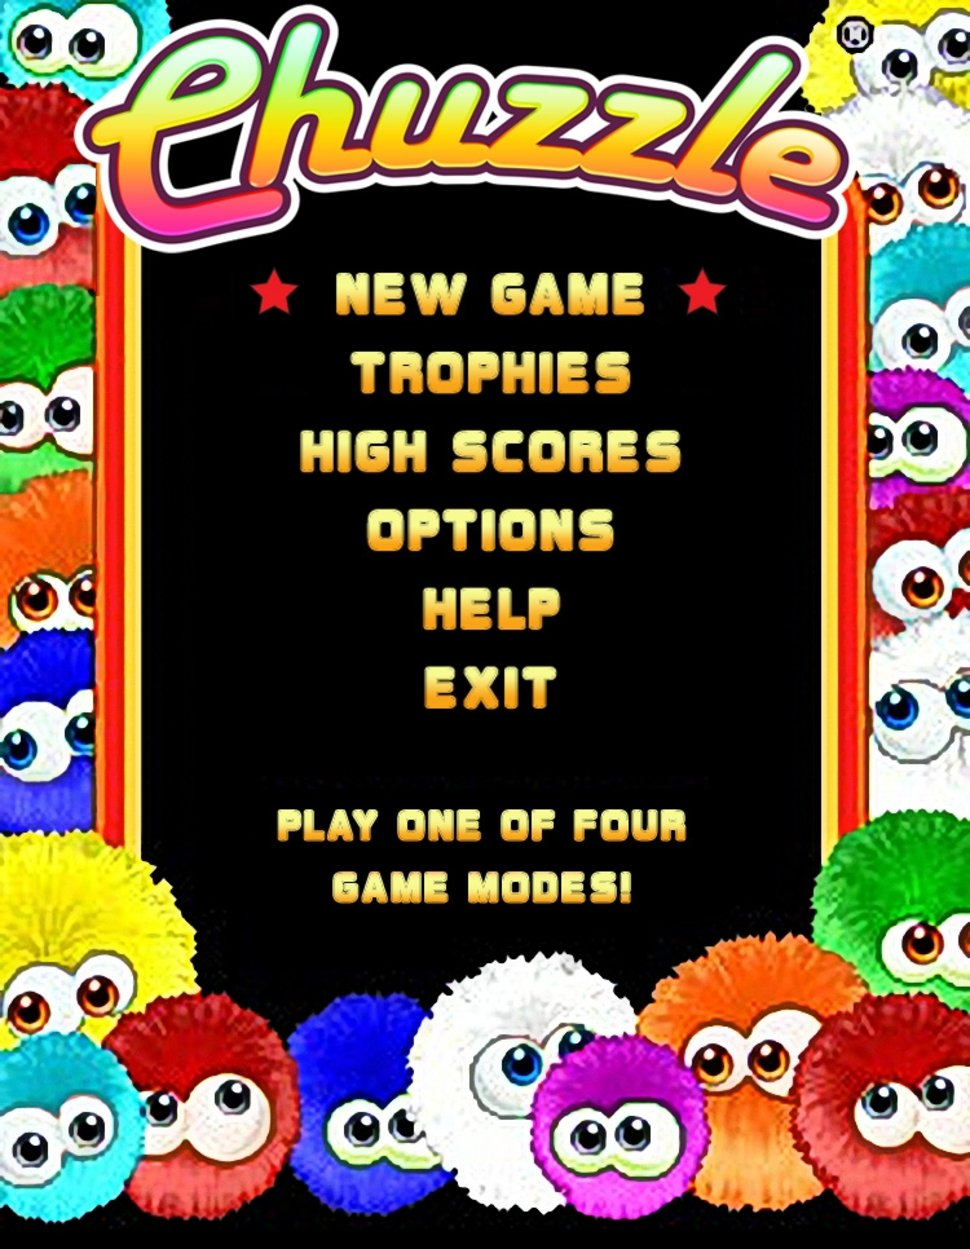 chuzzle mobile phone game image 1